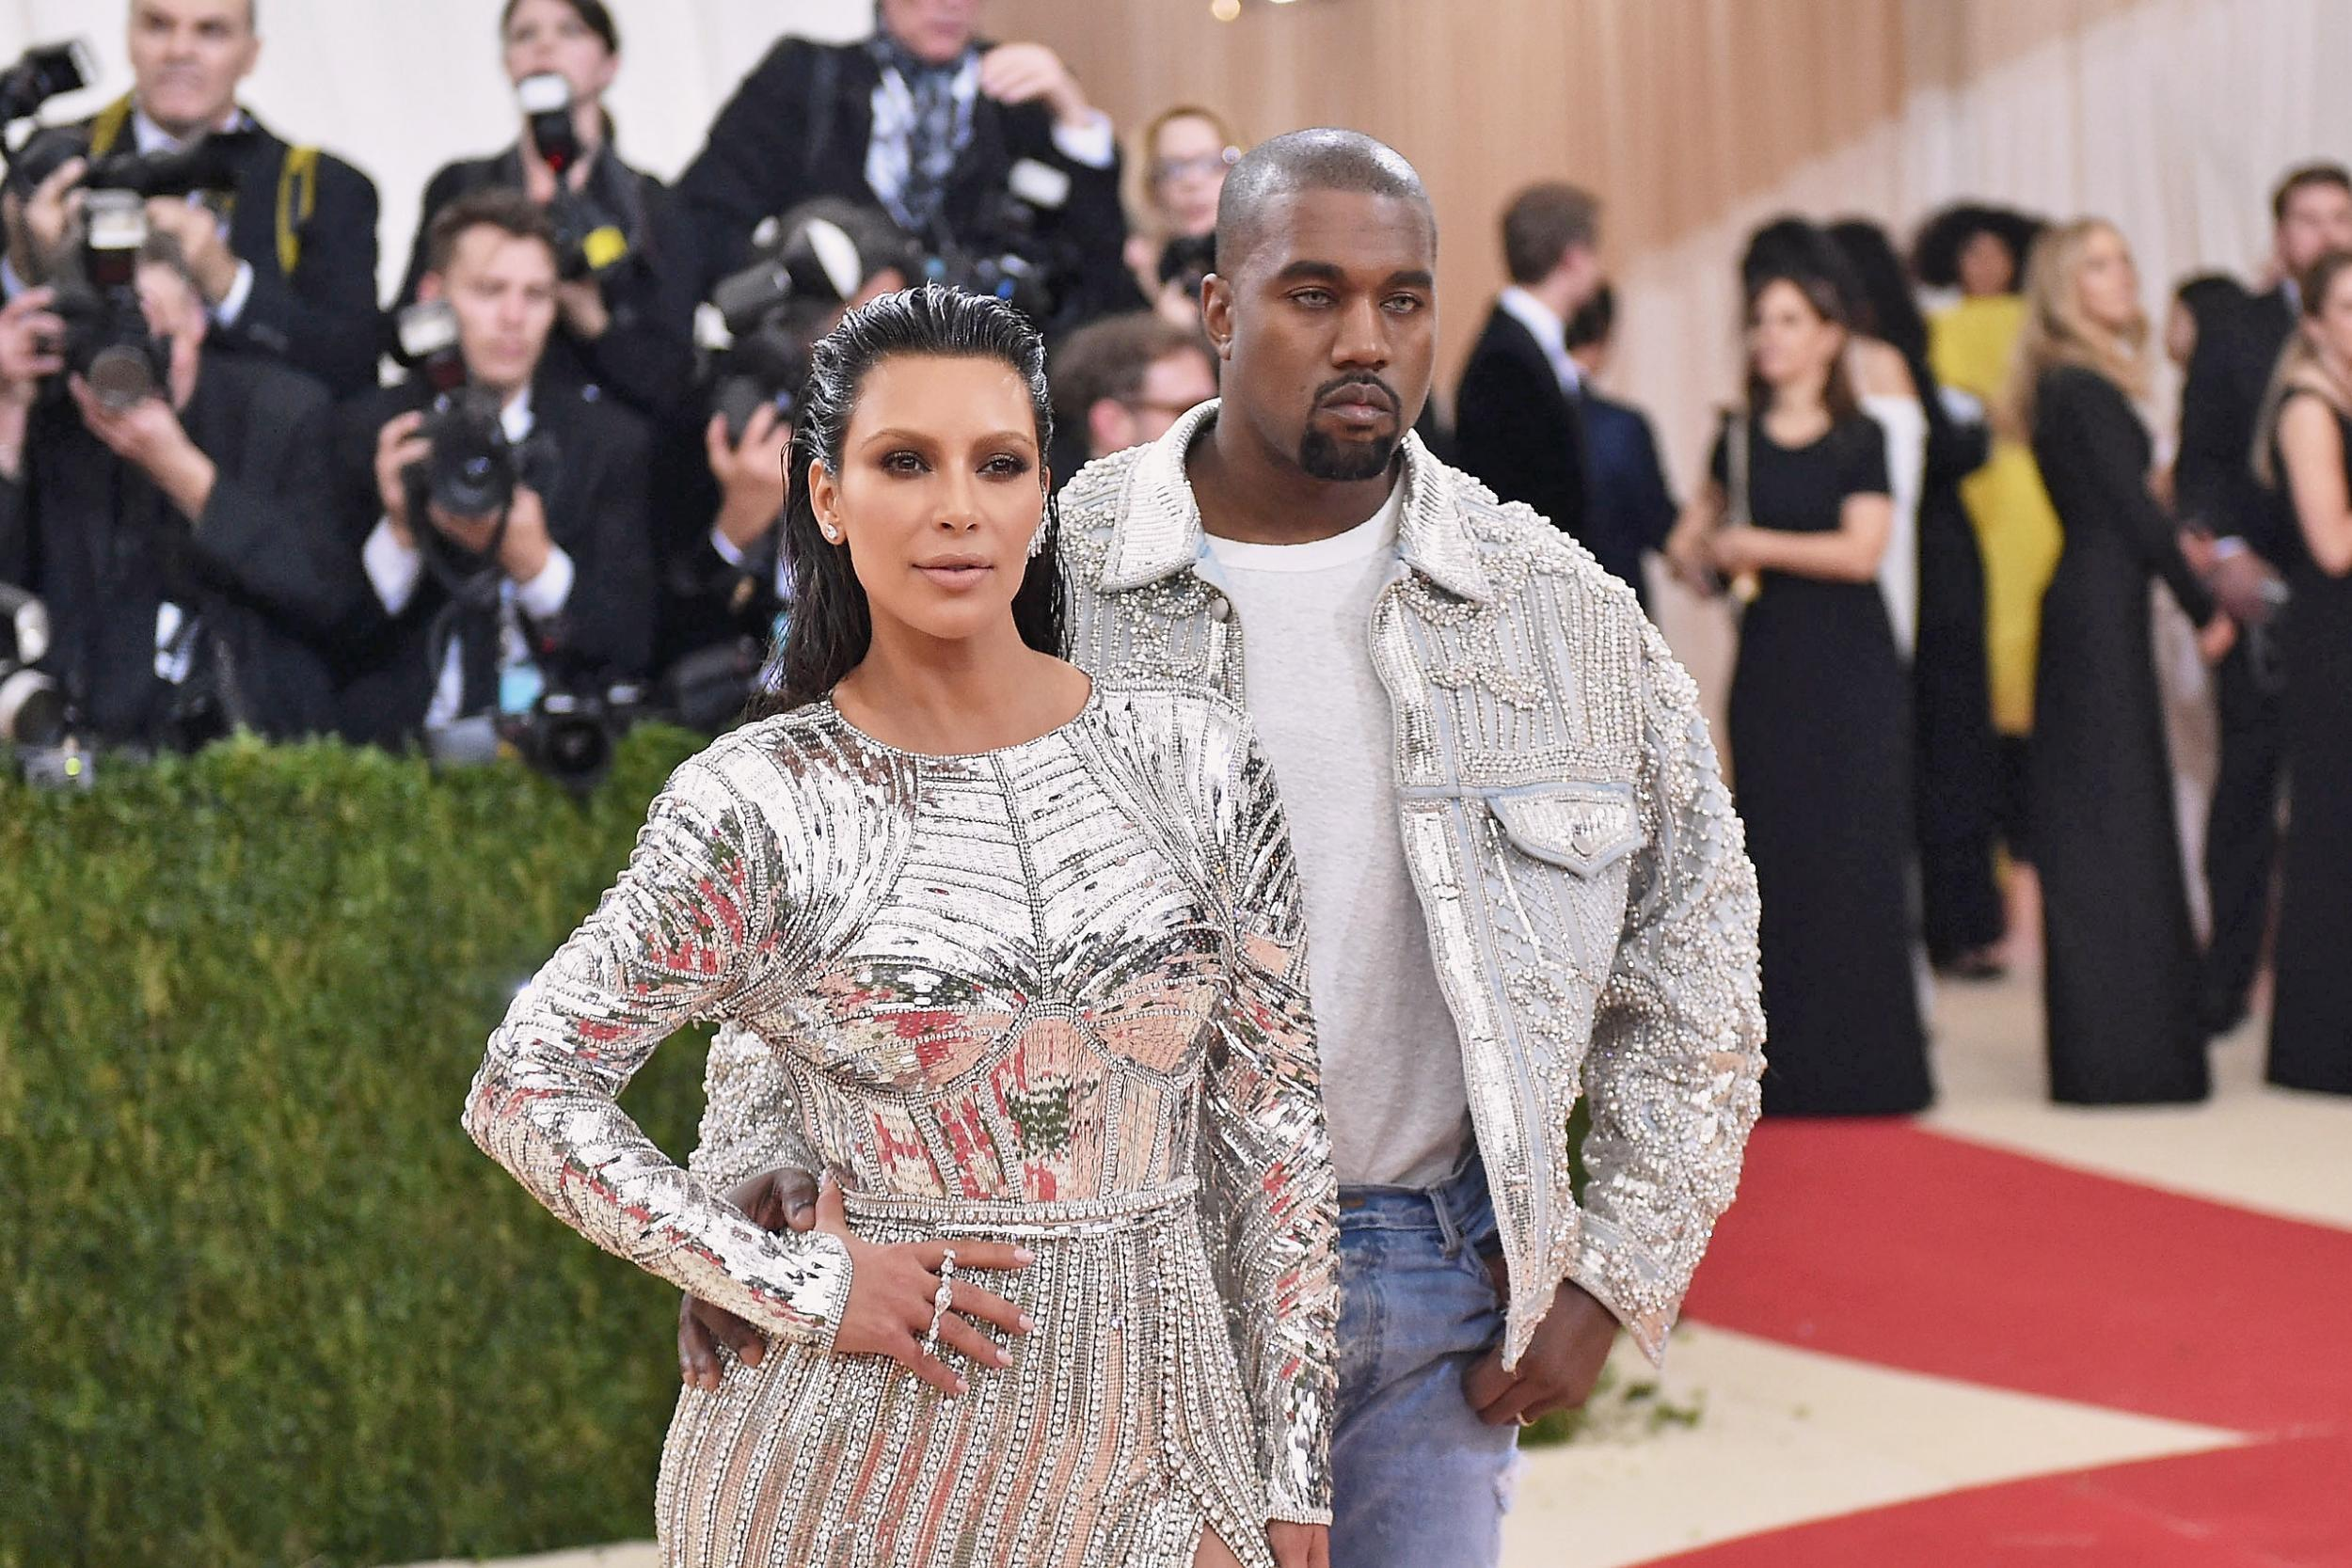 Experts reveal the reason why Kanye West stands behind Kim Kardashian in photos